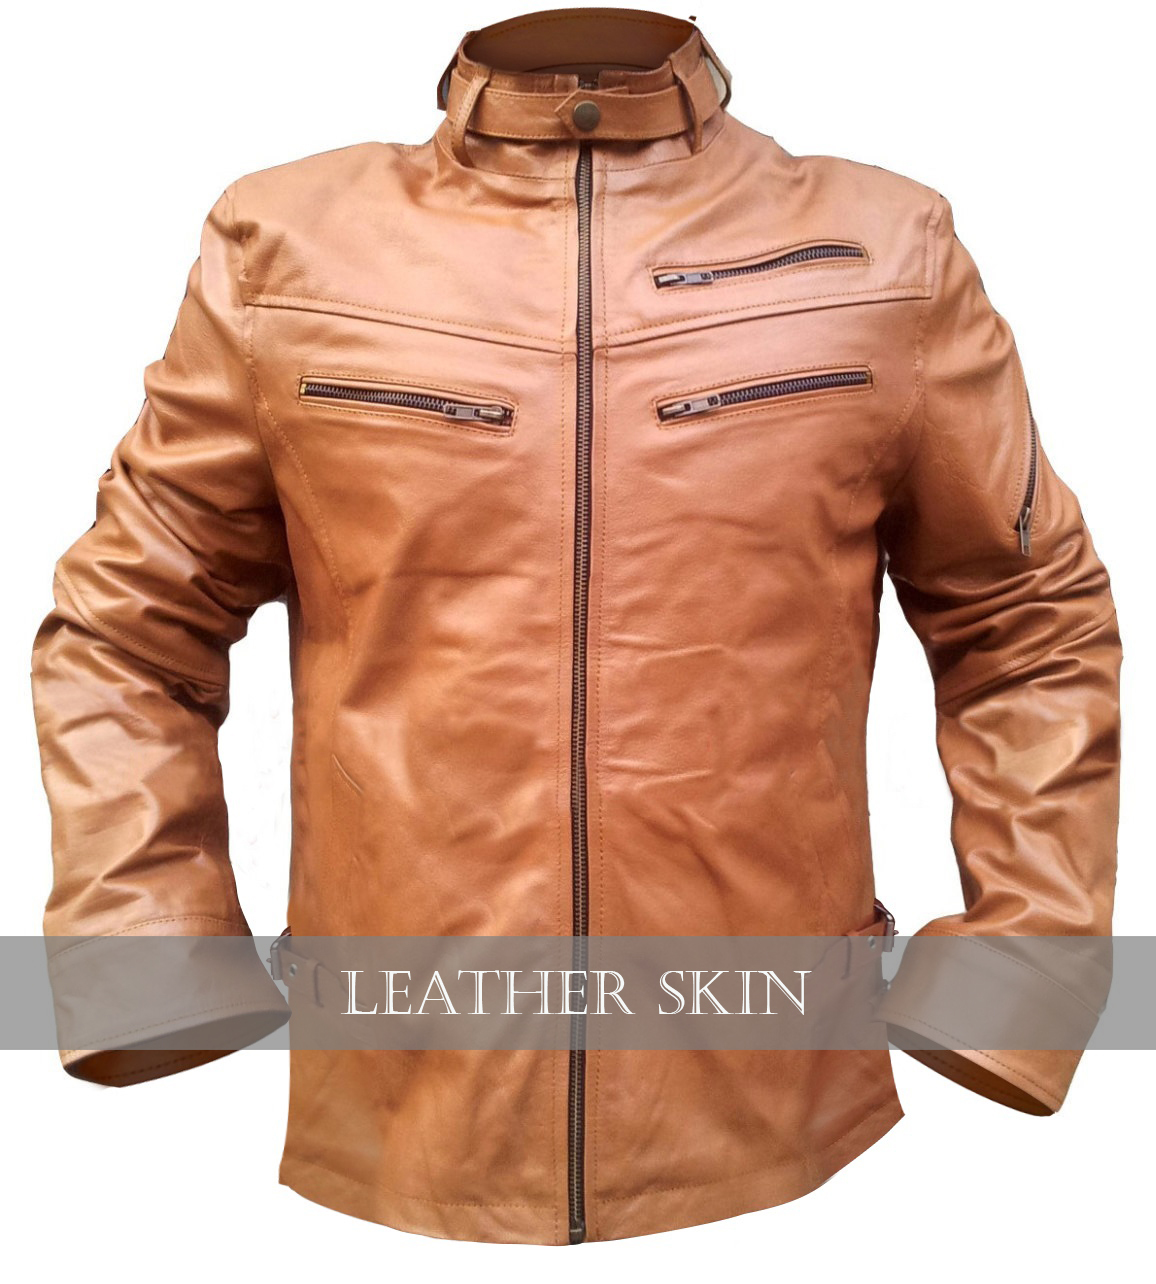 nwt light brown stylish men front up collar genuine leather jacket s m l xl 2xl outerwear. Black Bedroom Furniture Sets. Home Design Ideas